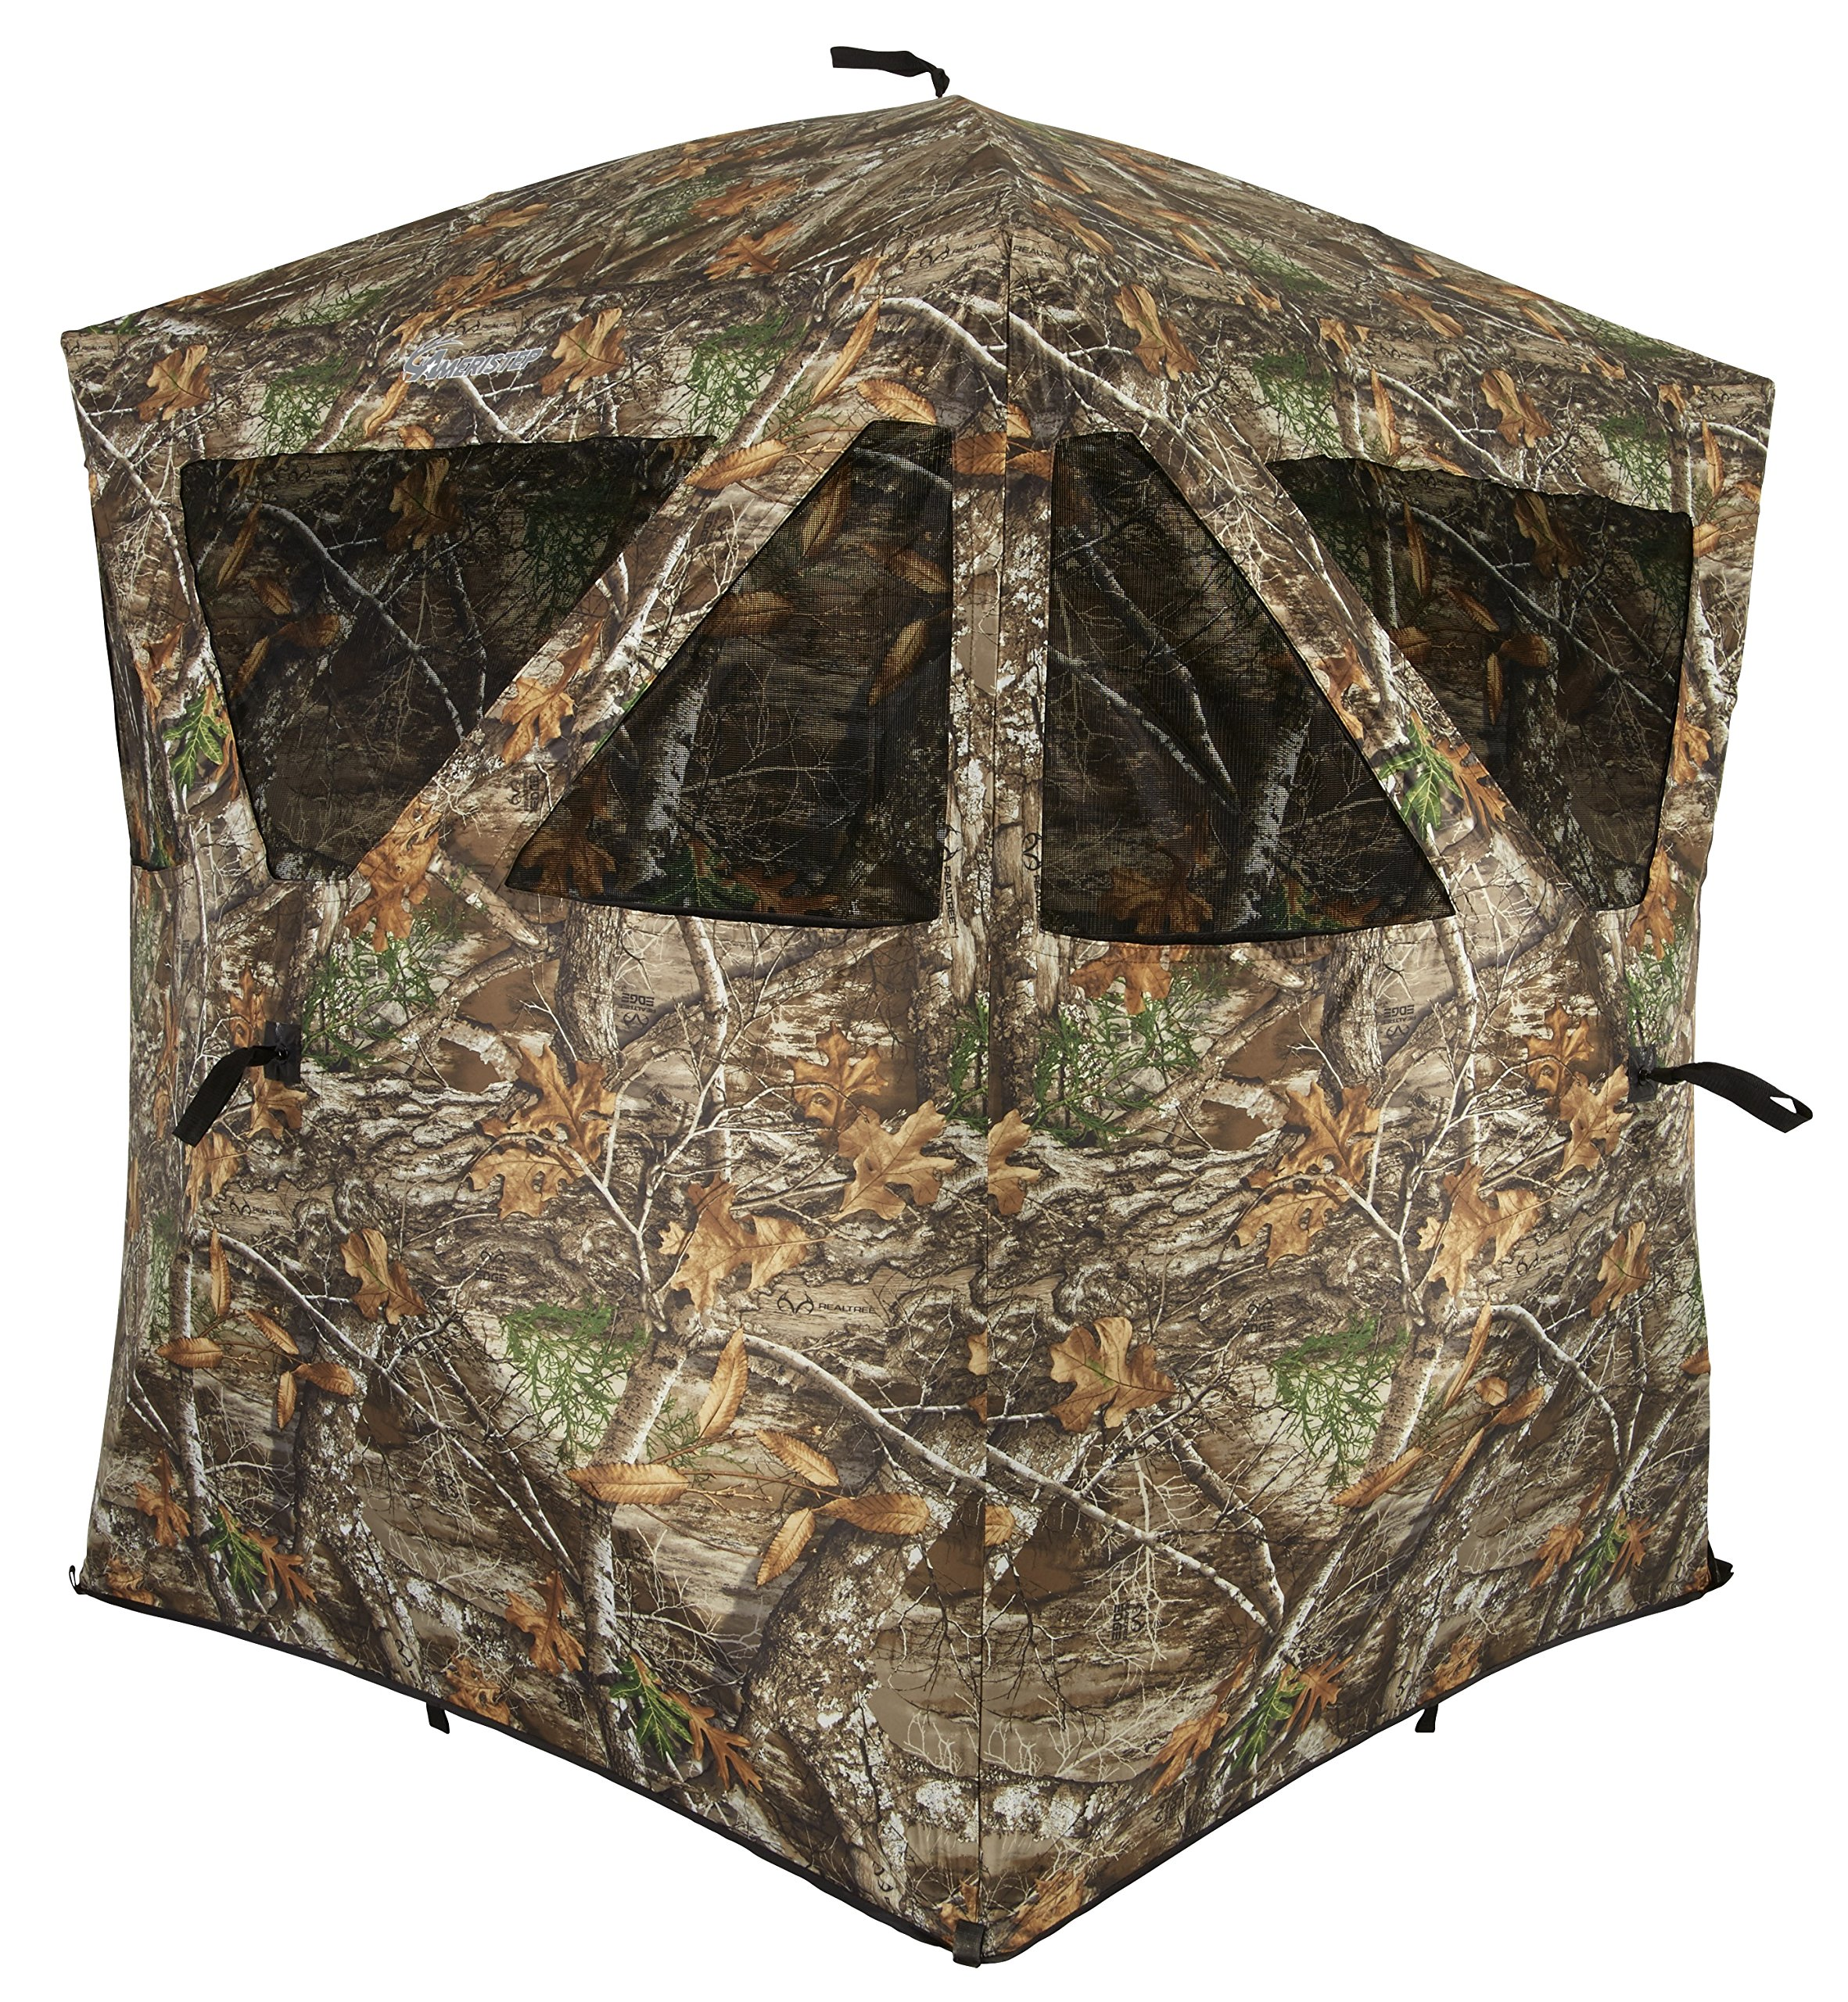 Ameristep Care Taker Ground Blind, Hubstyle Blind in Realtree Edge